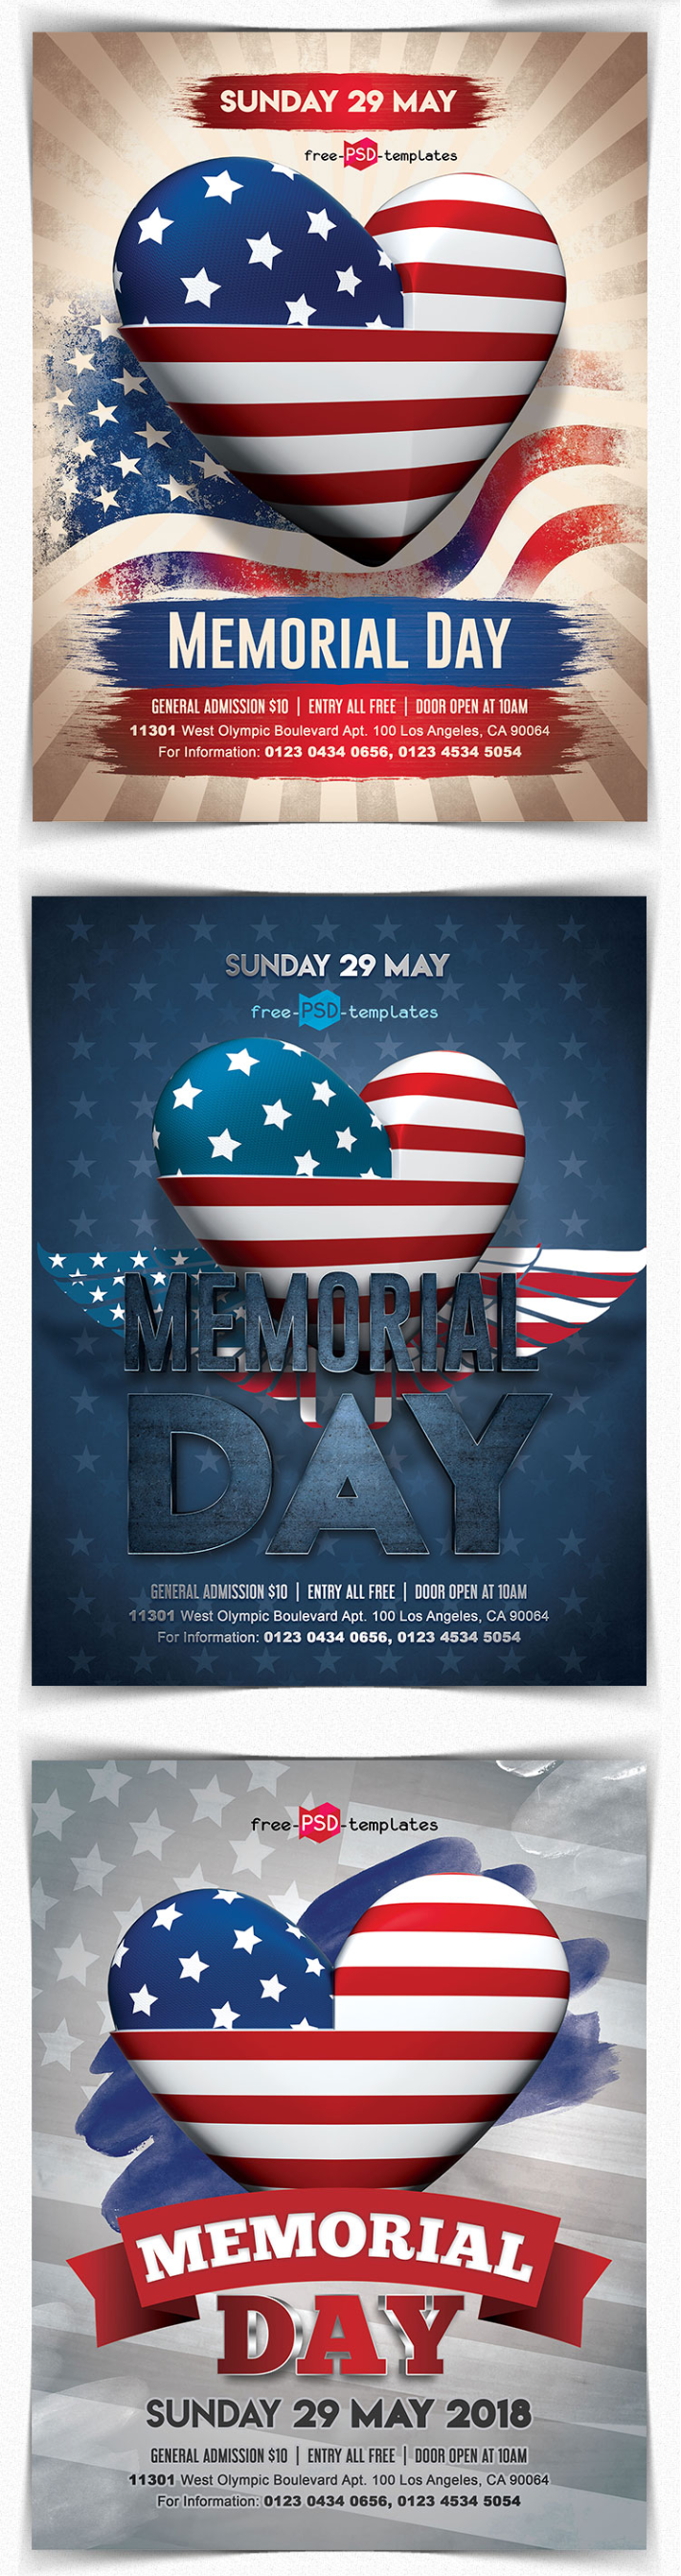 memorial day flyer template free download responsive joomla and